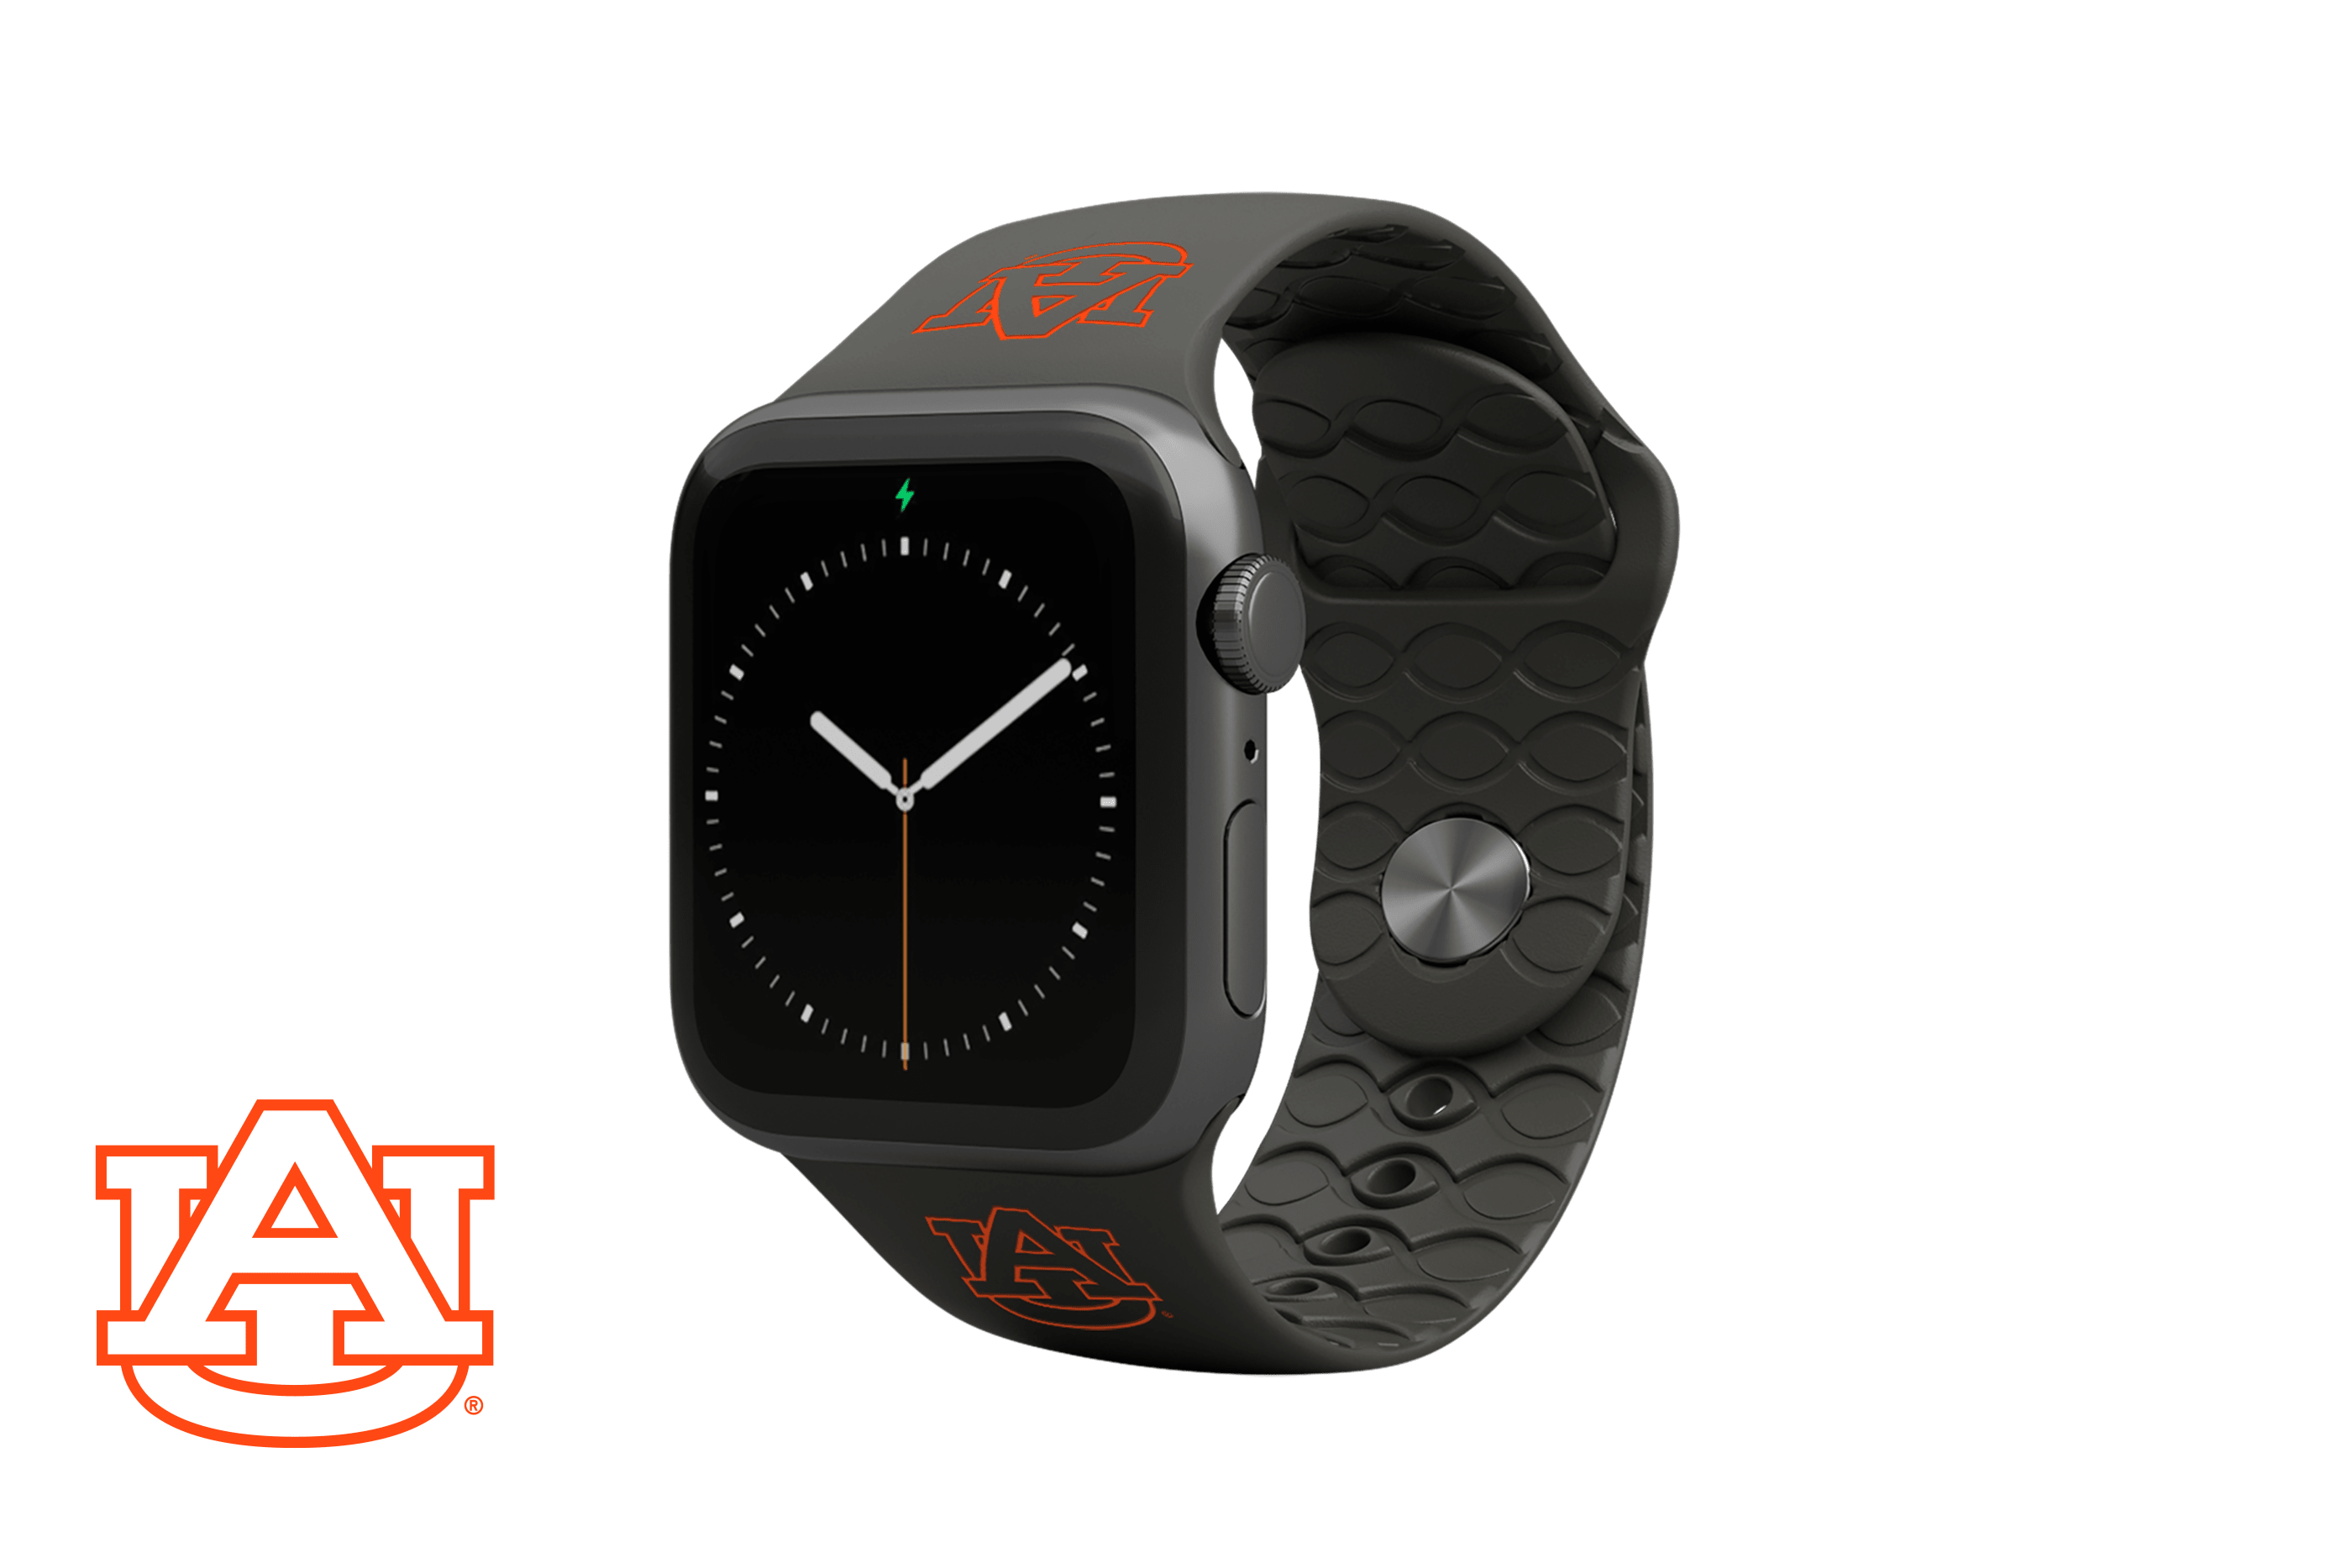 Apple Watch Band College Auburn Black with gray hardware viewed front on